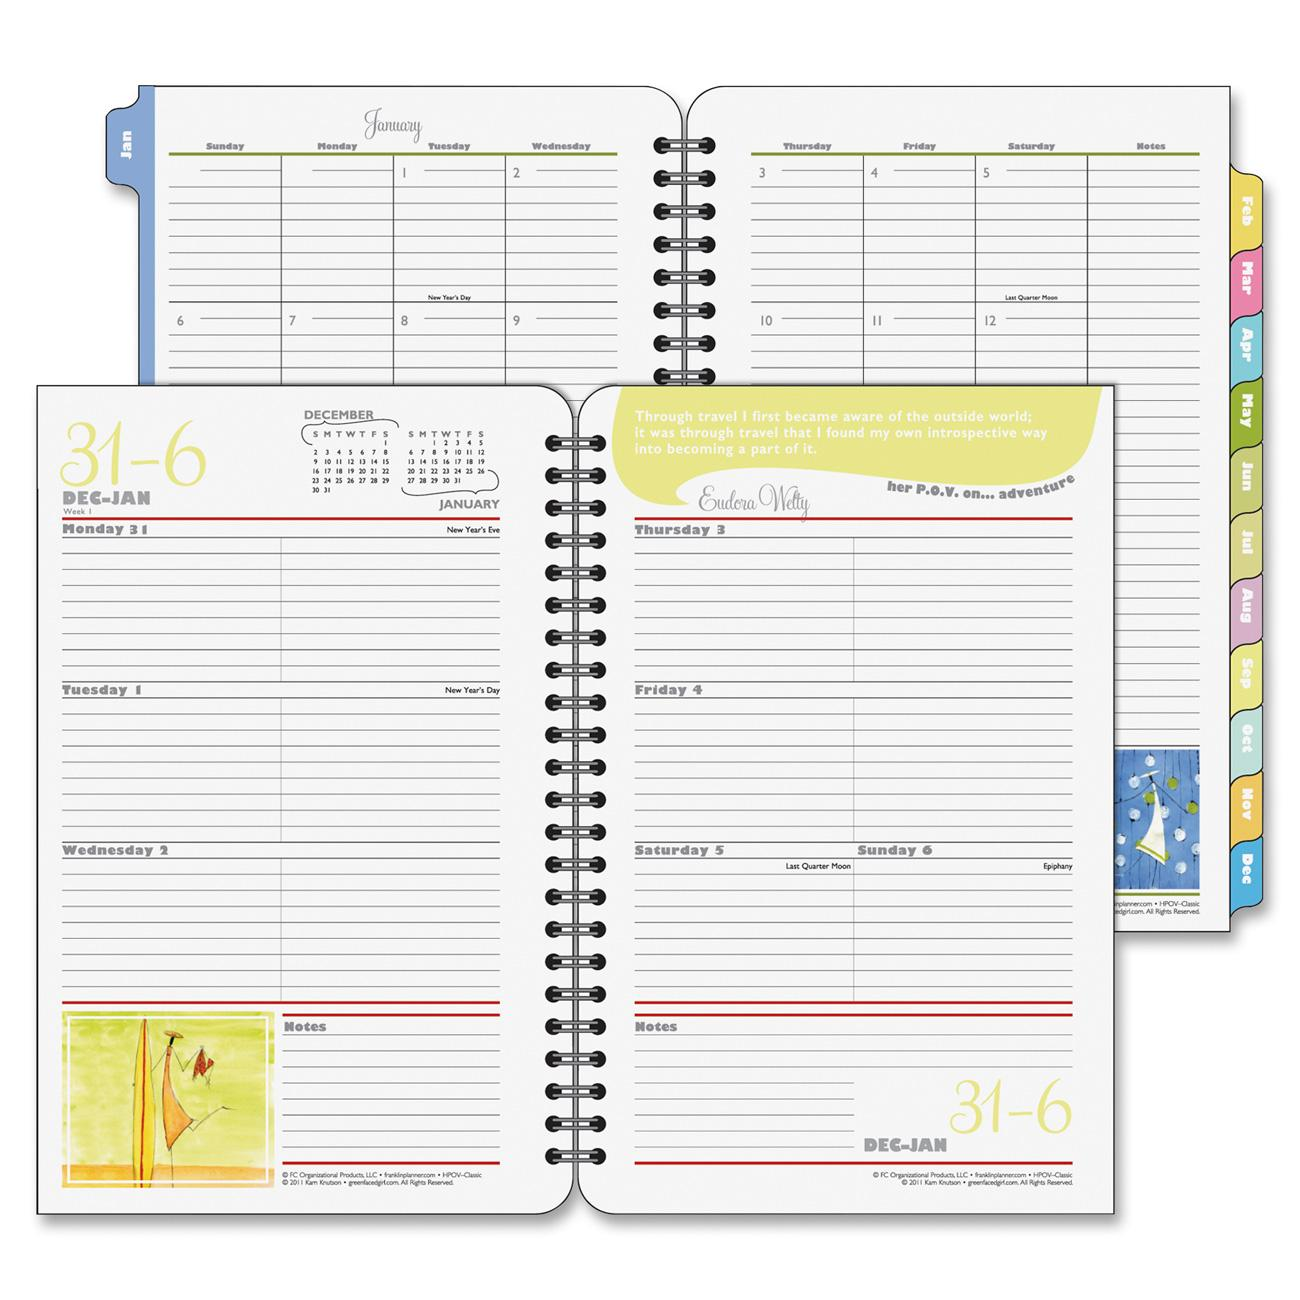 Franklin Covey Her Point Of View Weekly Planner